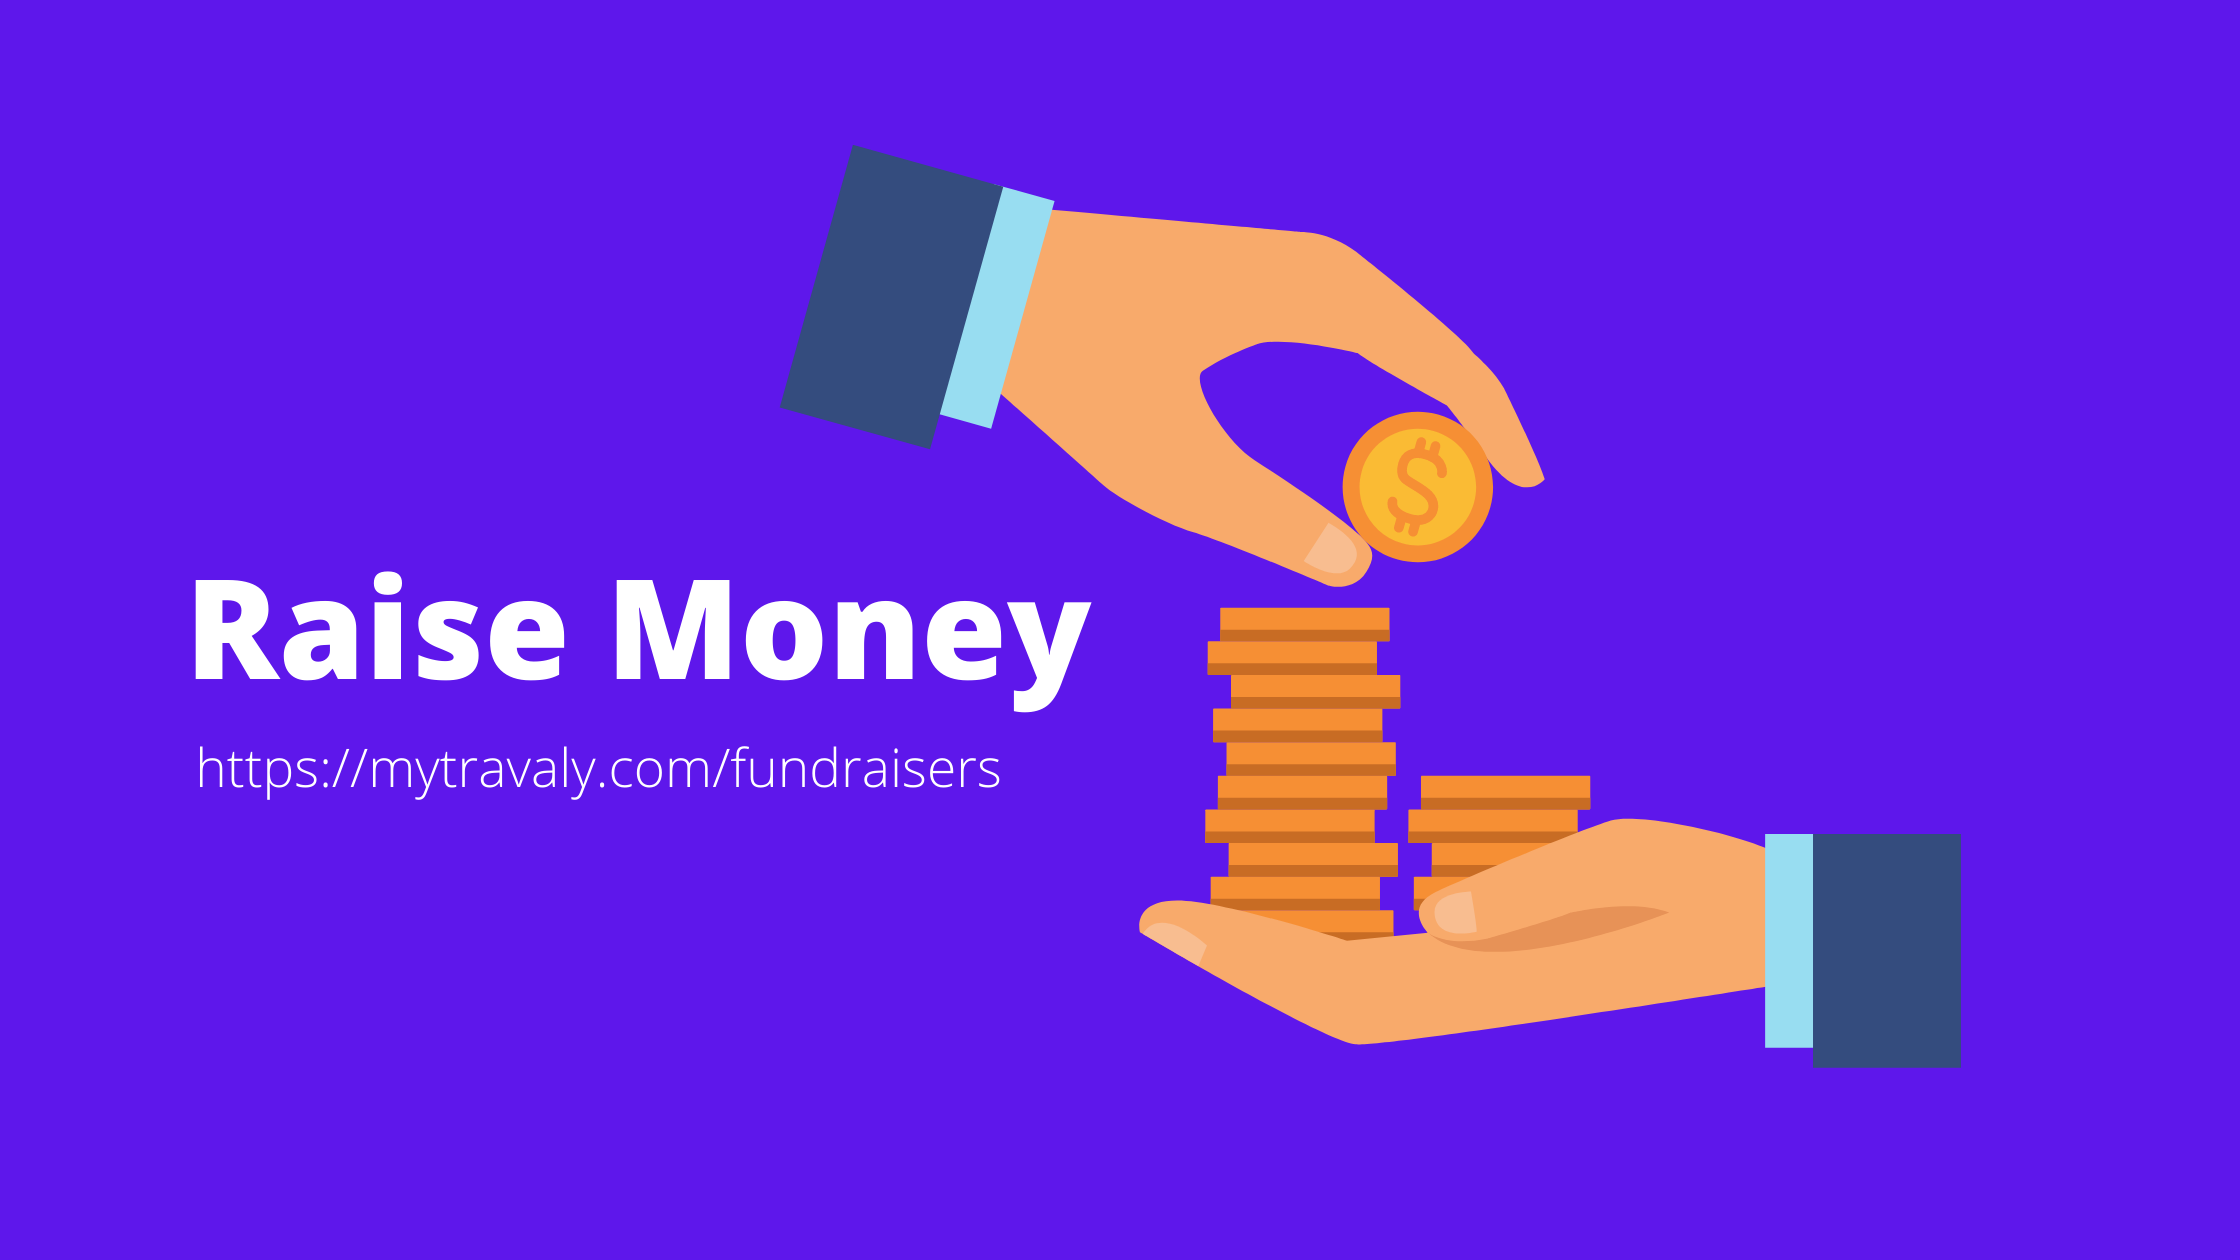 How can an NGO raise fund using mytravaly's fundraiser